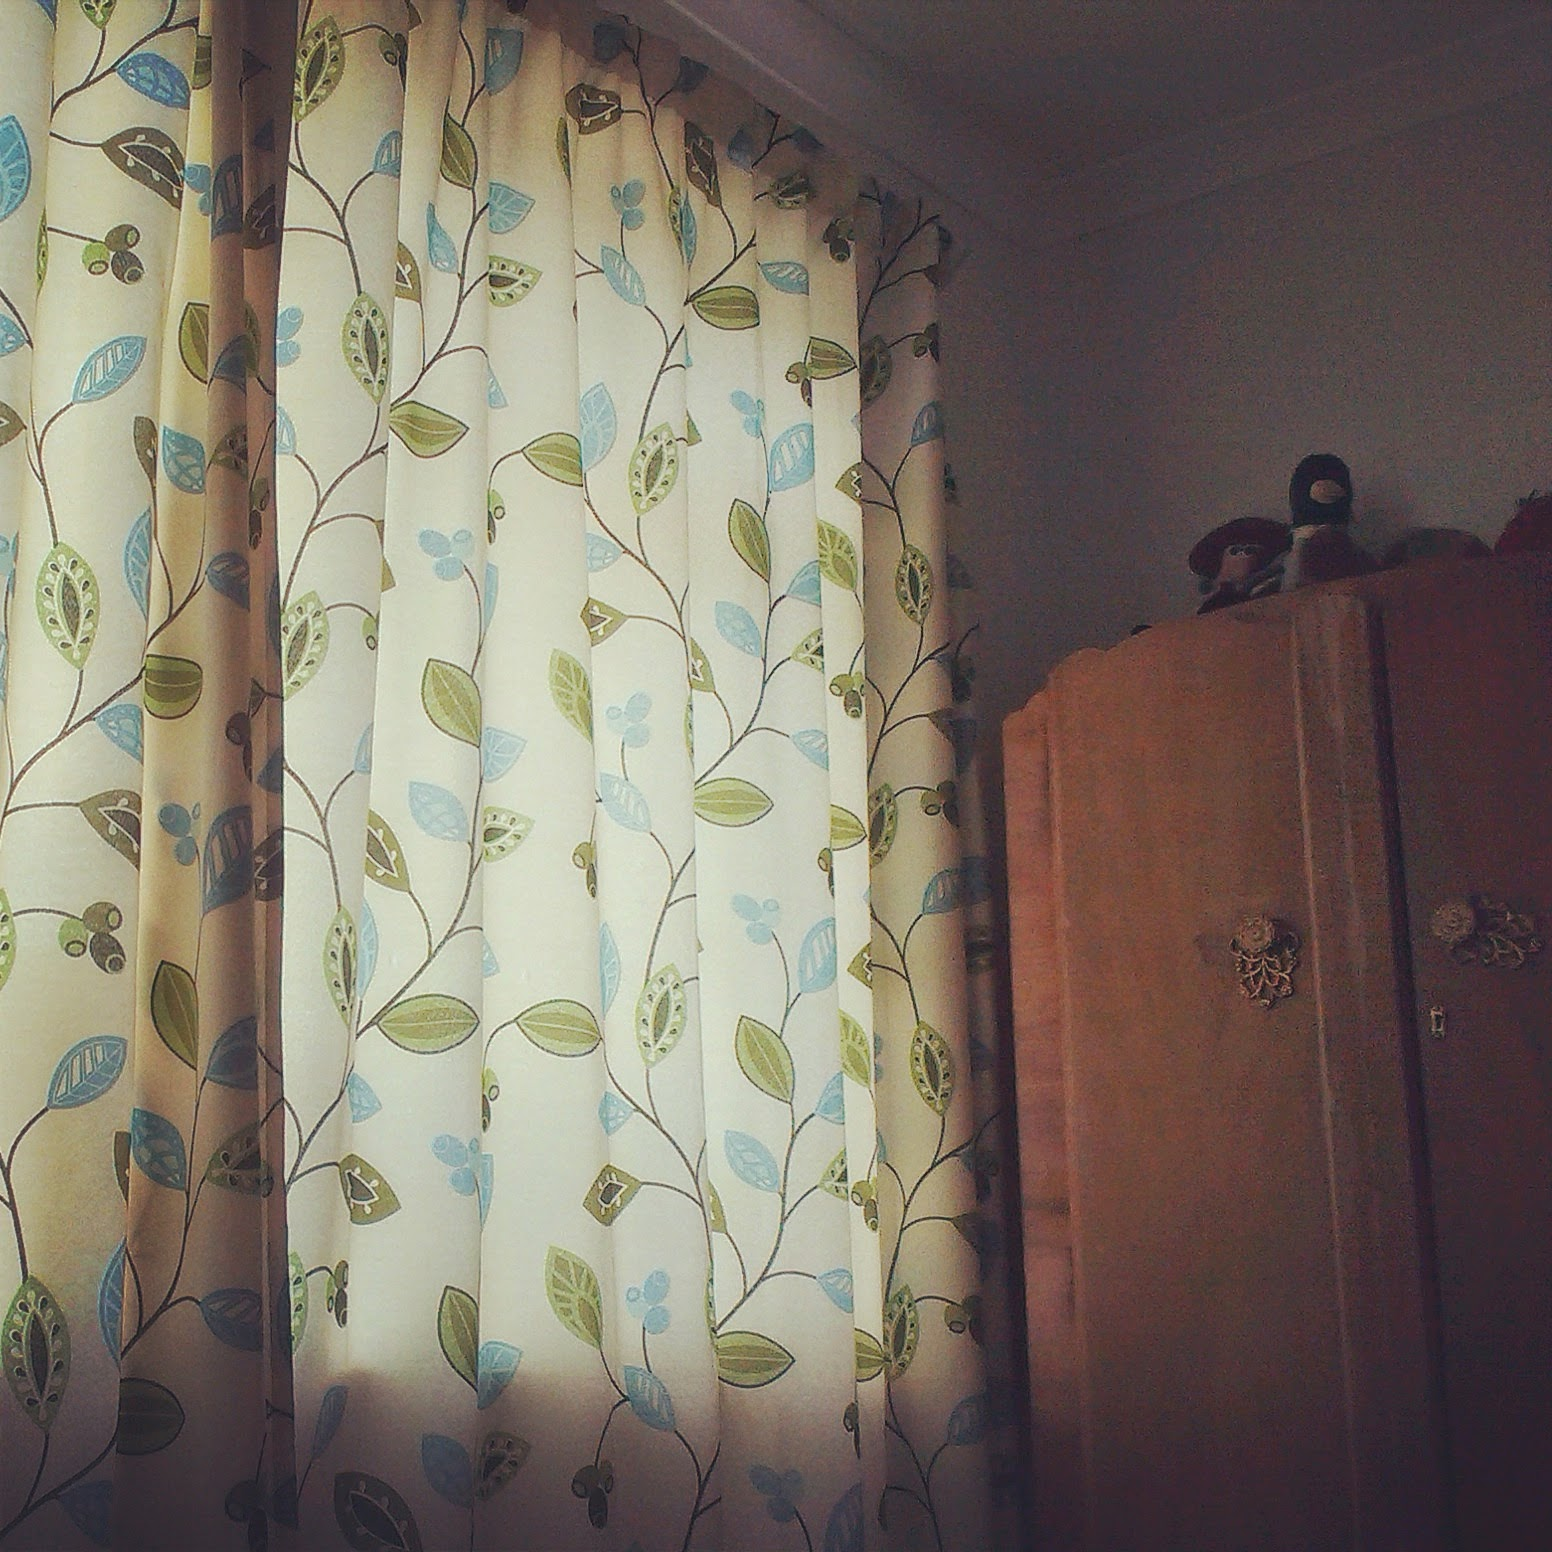 Sunshine through the curtains